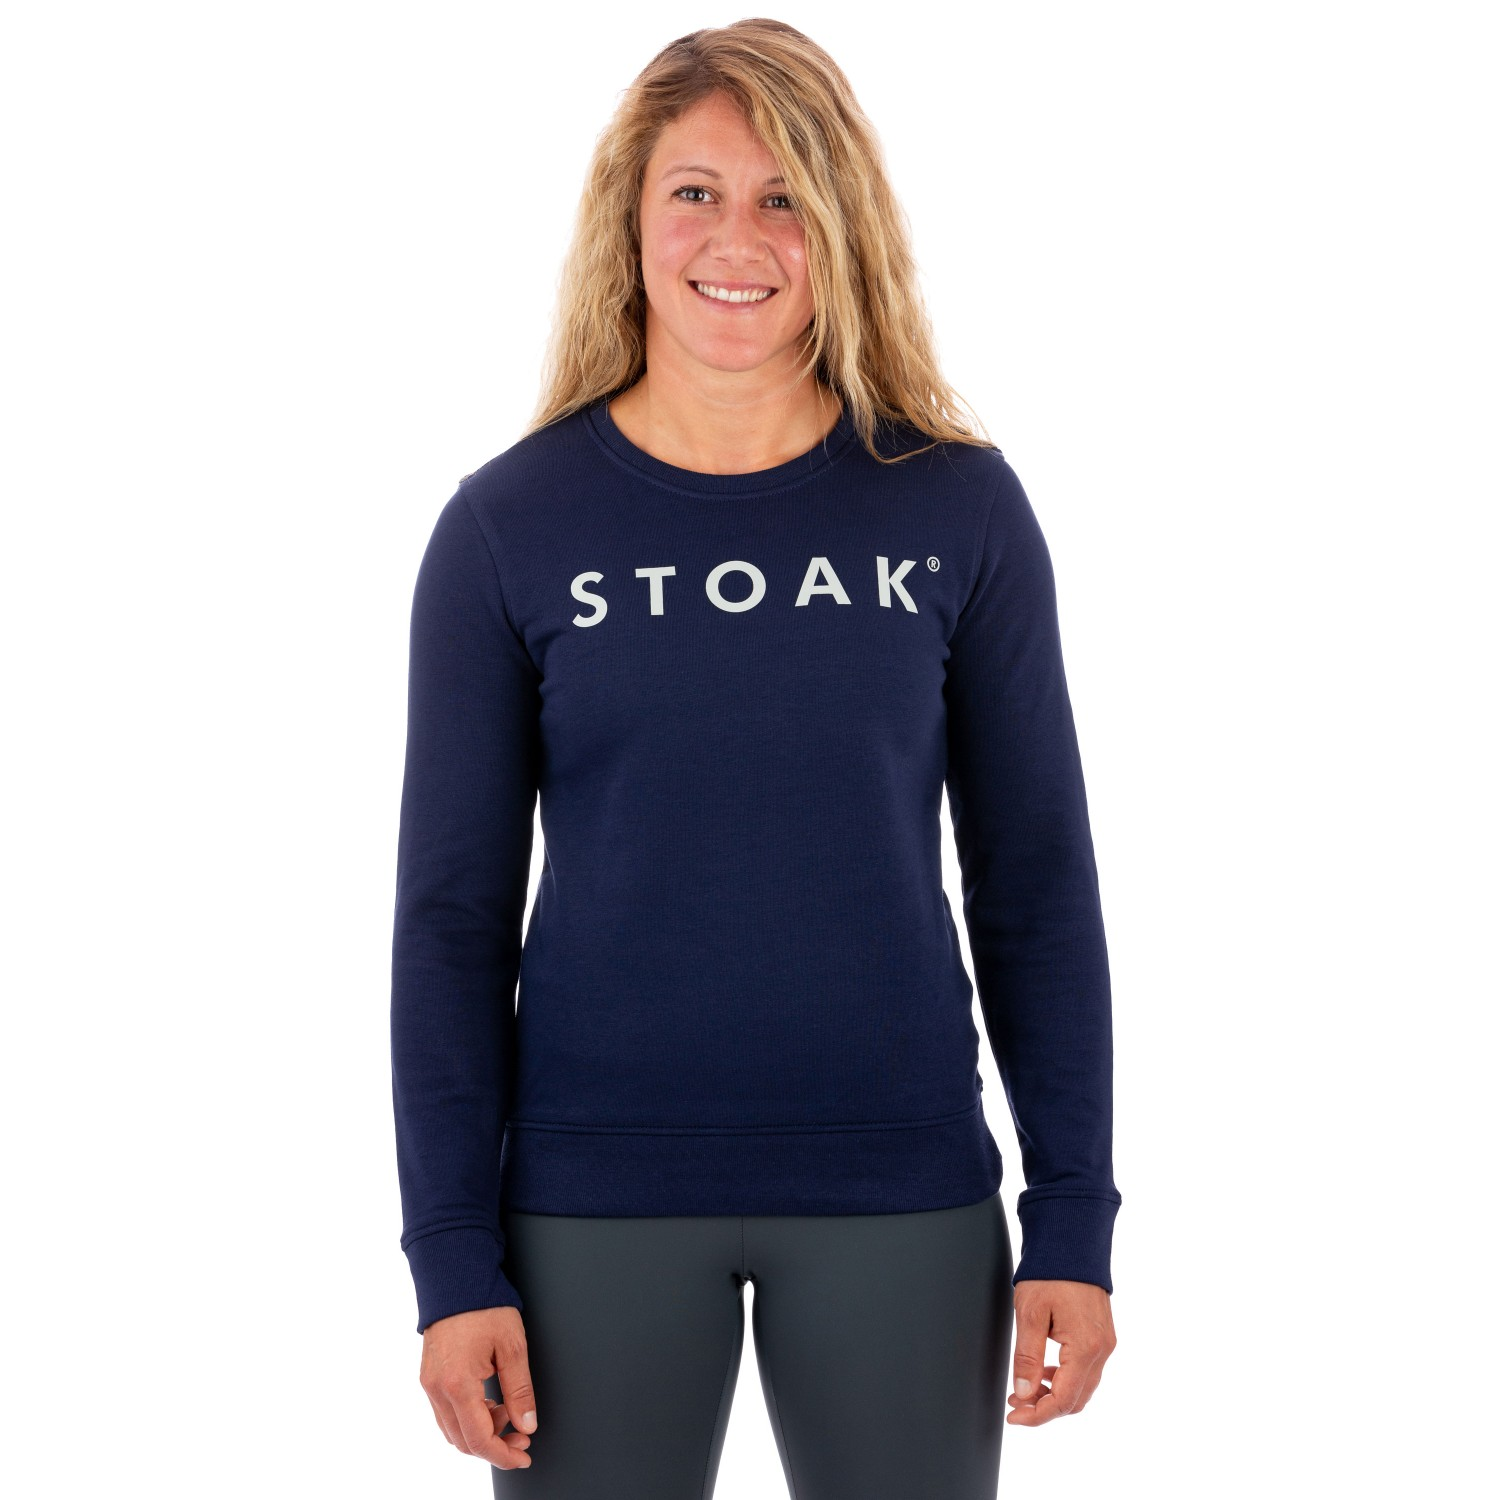 STOAK DEEP SEA Crewneck